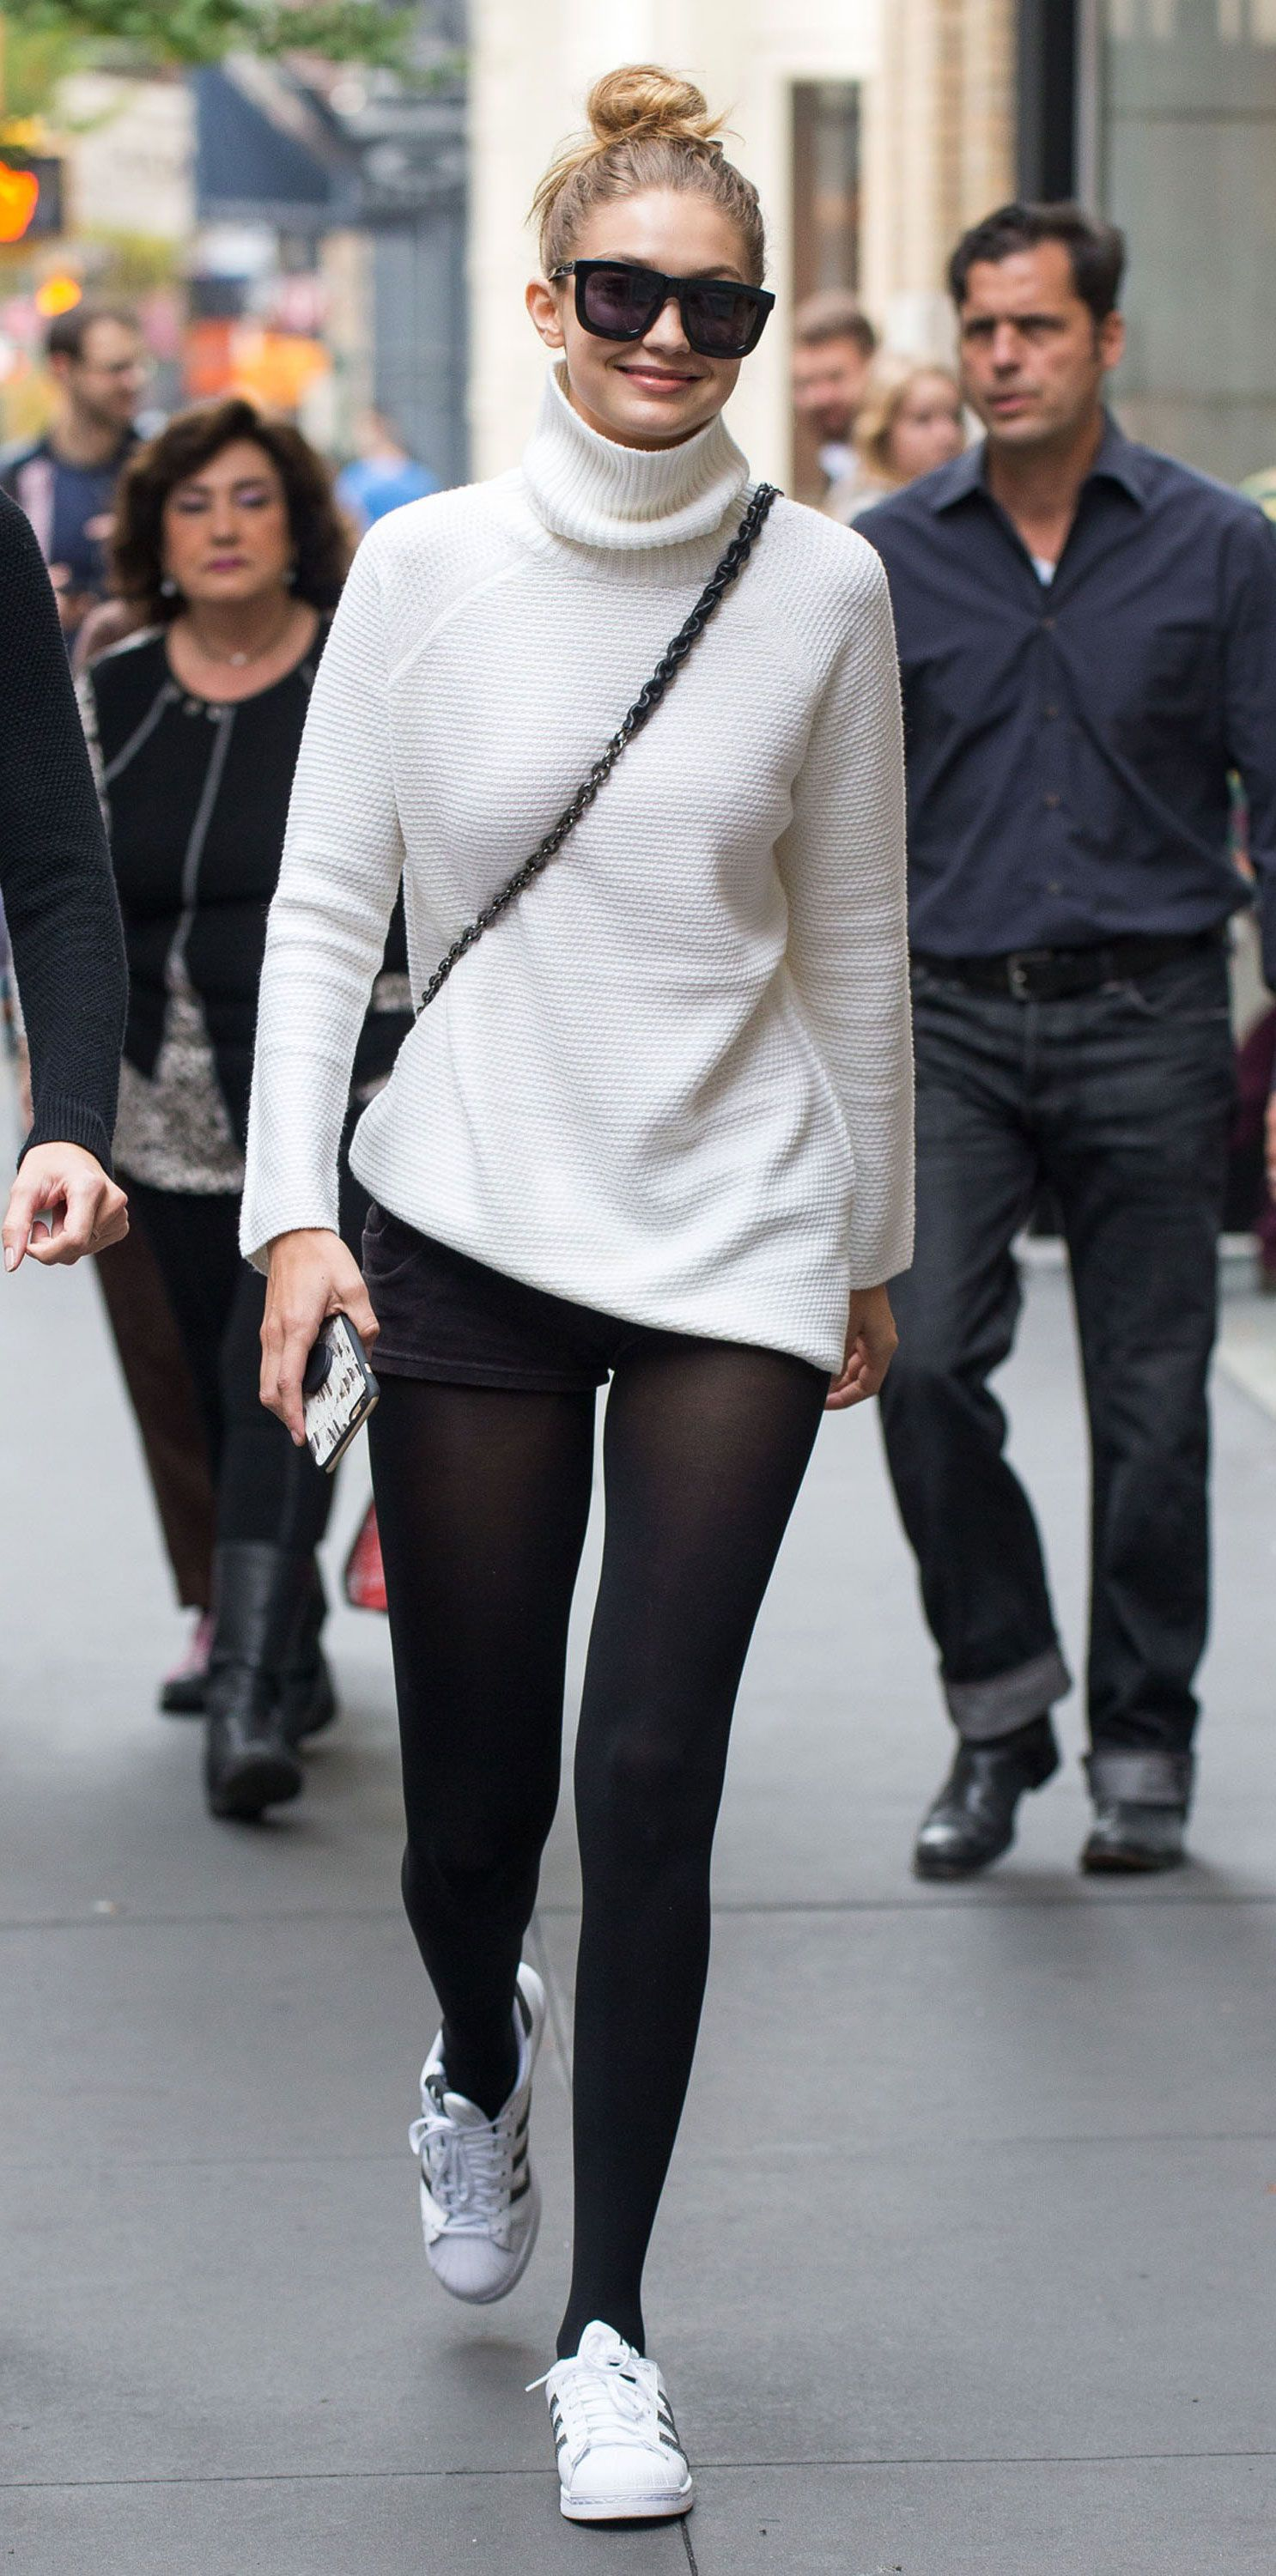 5ea554331 39 Chic Celebrity Looks That Have Us Saying Yes to Tights - Gigi Hadid